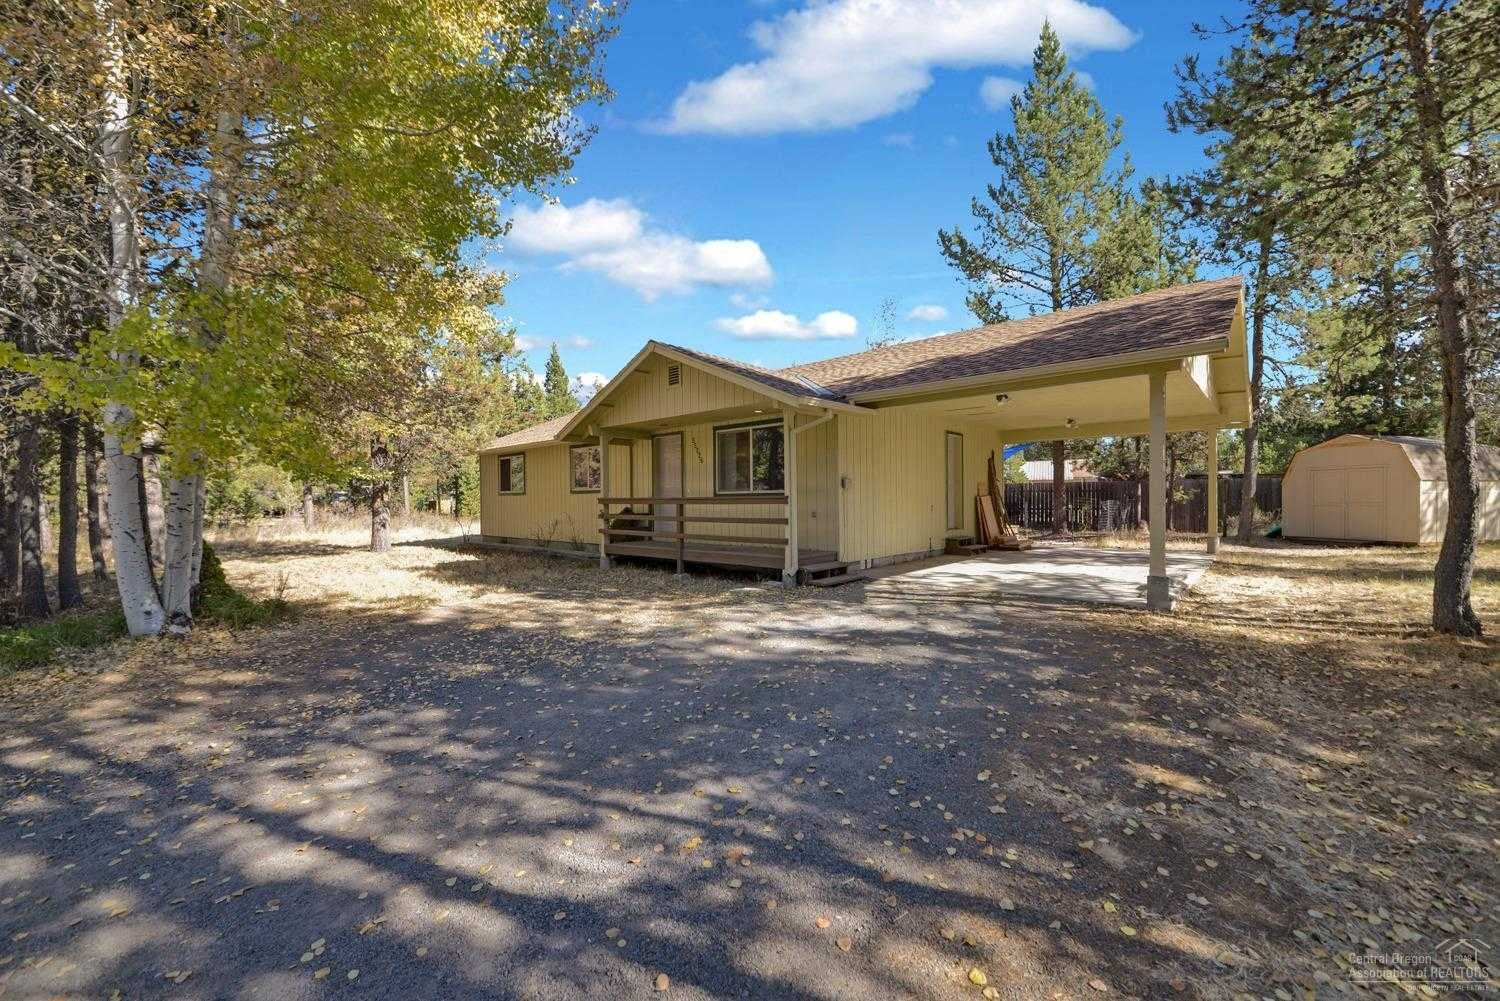 $239,000 - 3Br/2Ba -  for Sale in Bend